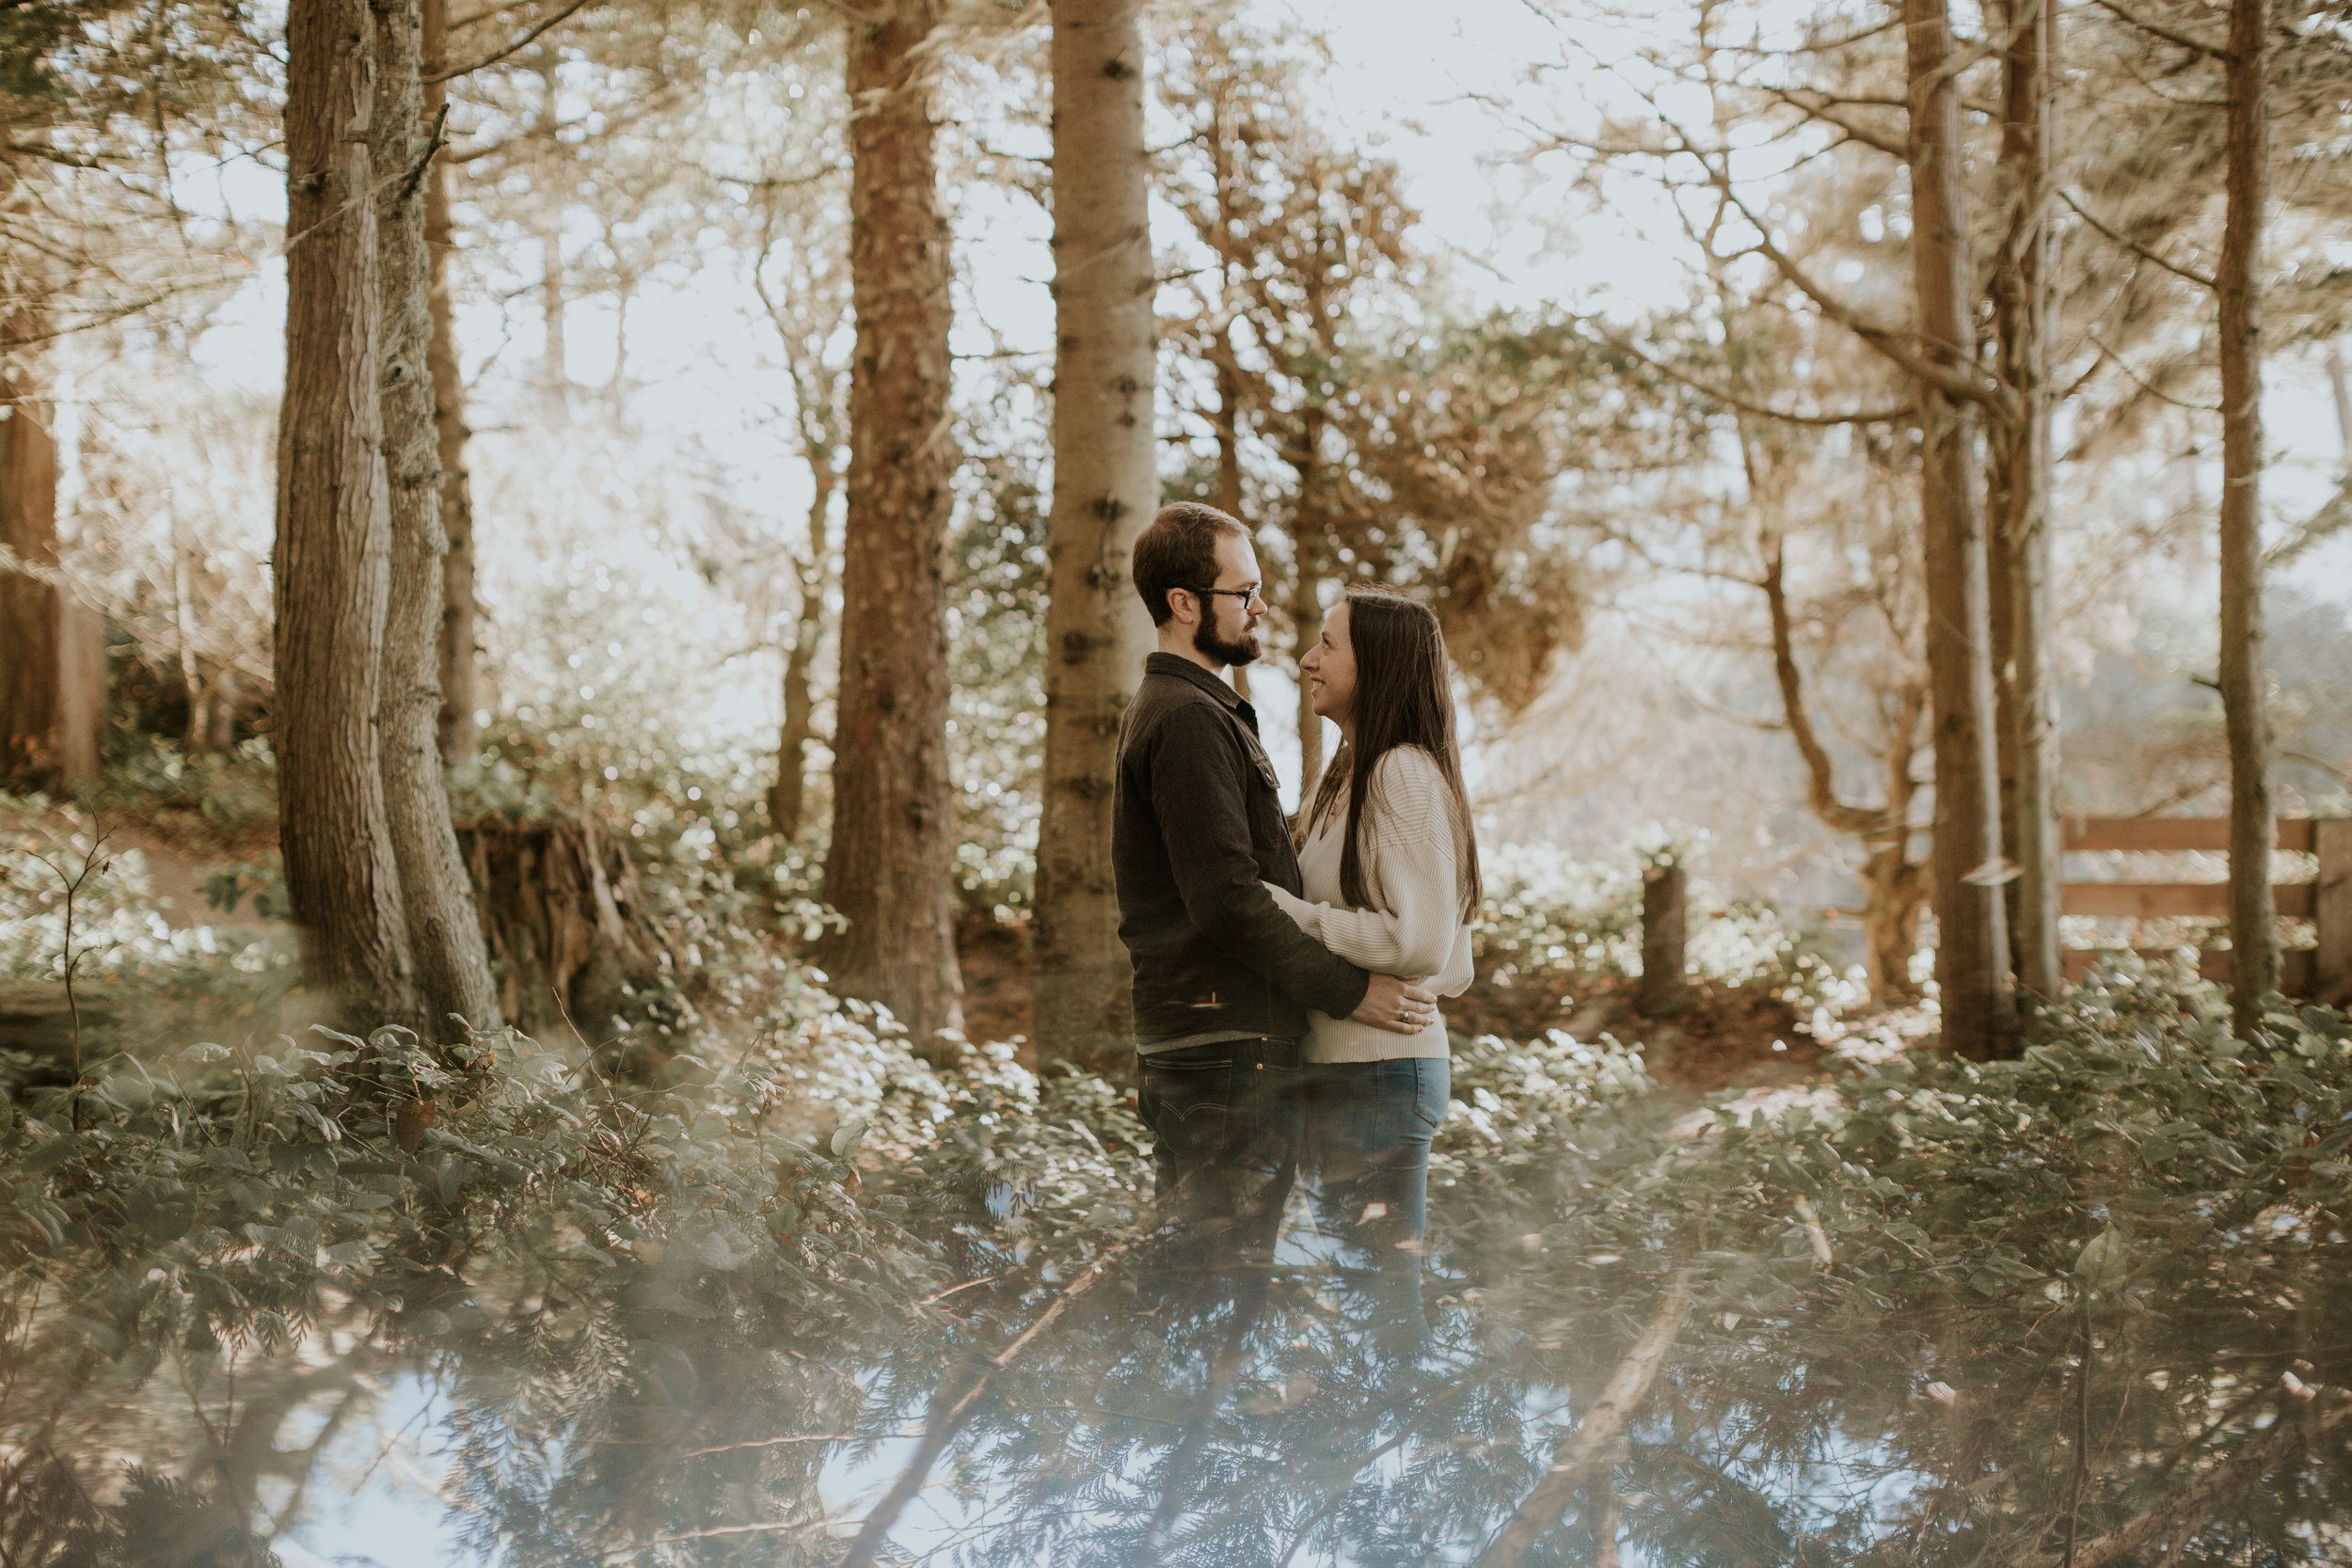 PNW-Olympic National Park-Salt Creek-engagement-Portrait-Port-Angeles-Washington-elopement-photographer-kayla-dawn-photography-kayladawnphoto-wedding-anniversary-photoshoot-olympic-peninsula-96.jpg